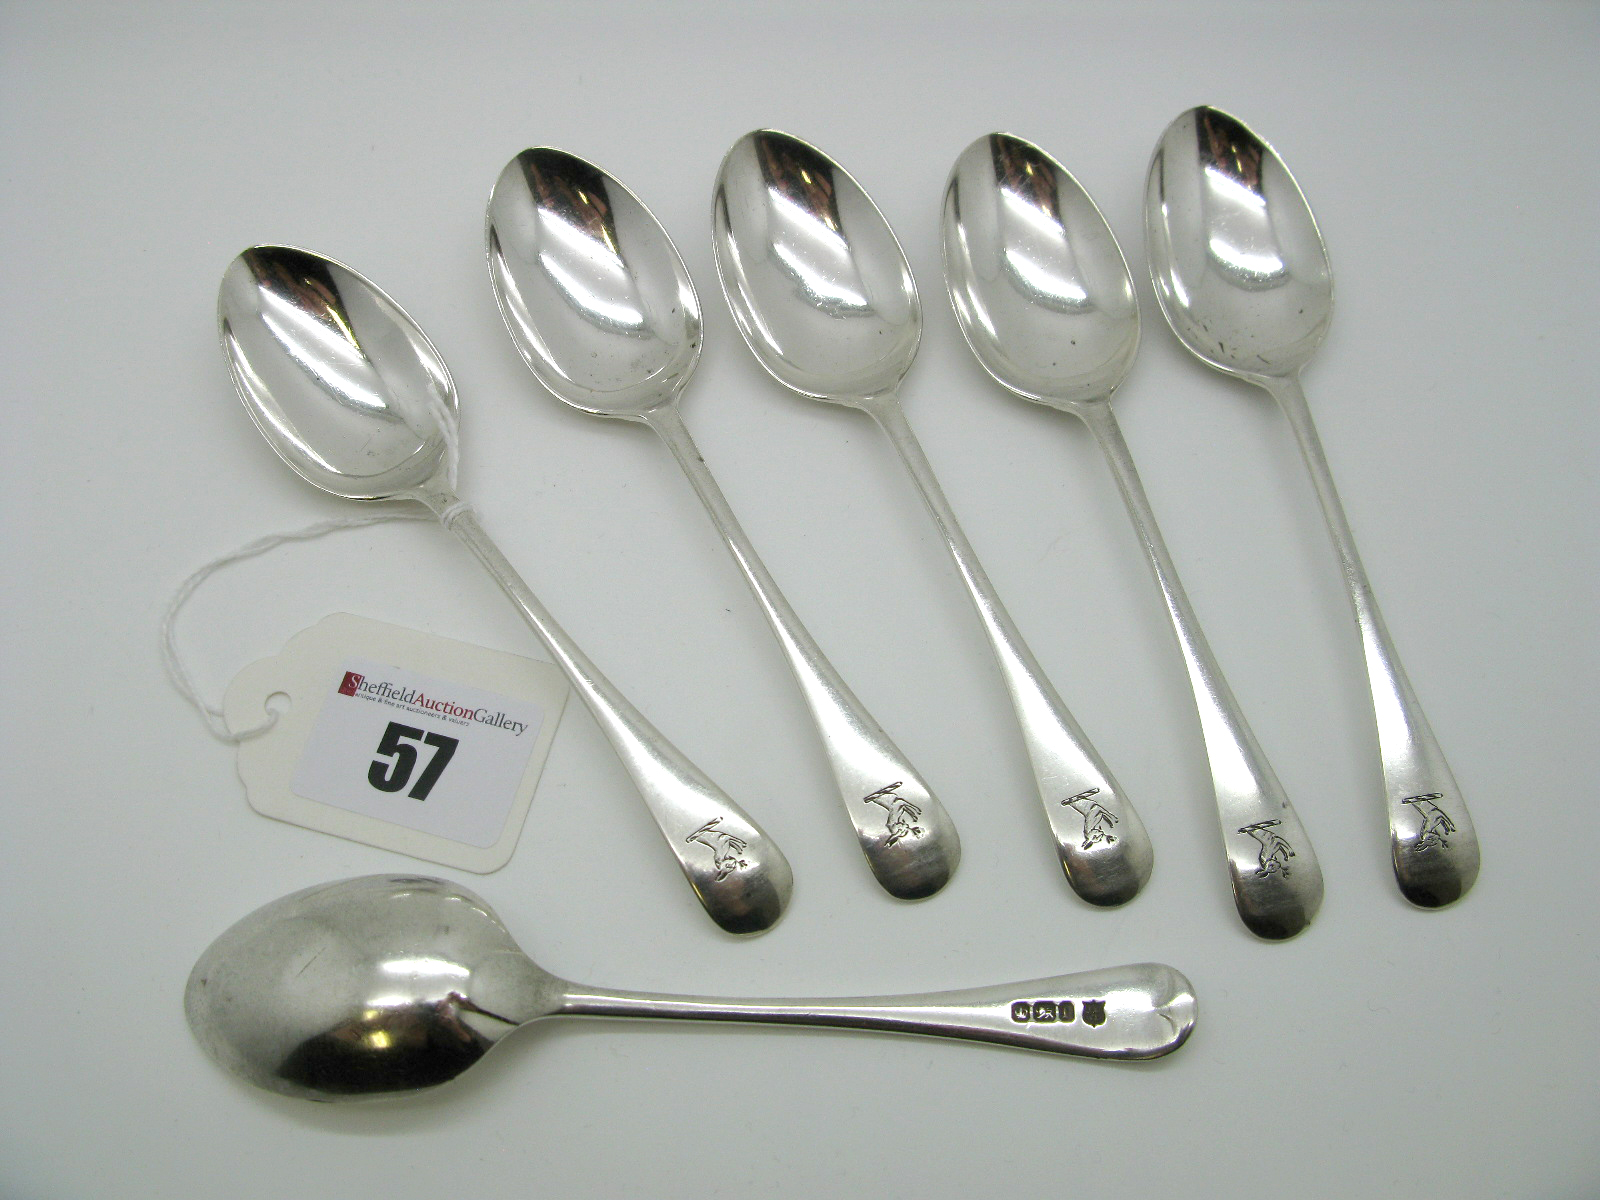 Lot 57 - A Set of Six Hallmarked Silver Old English Pattern Teaspoons, James Deakin, Sheffield 1897, crested.